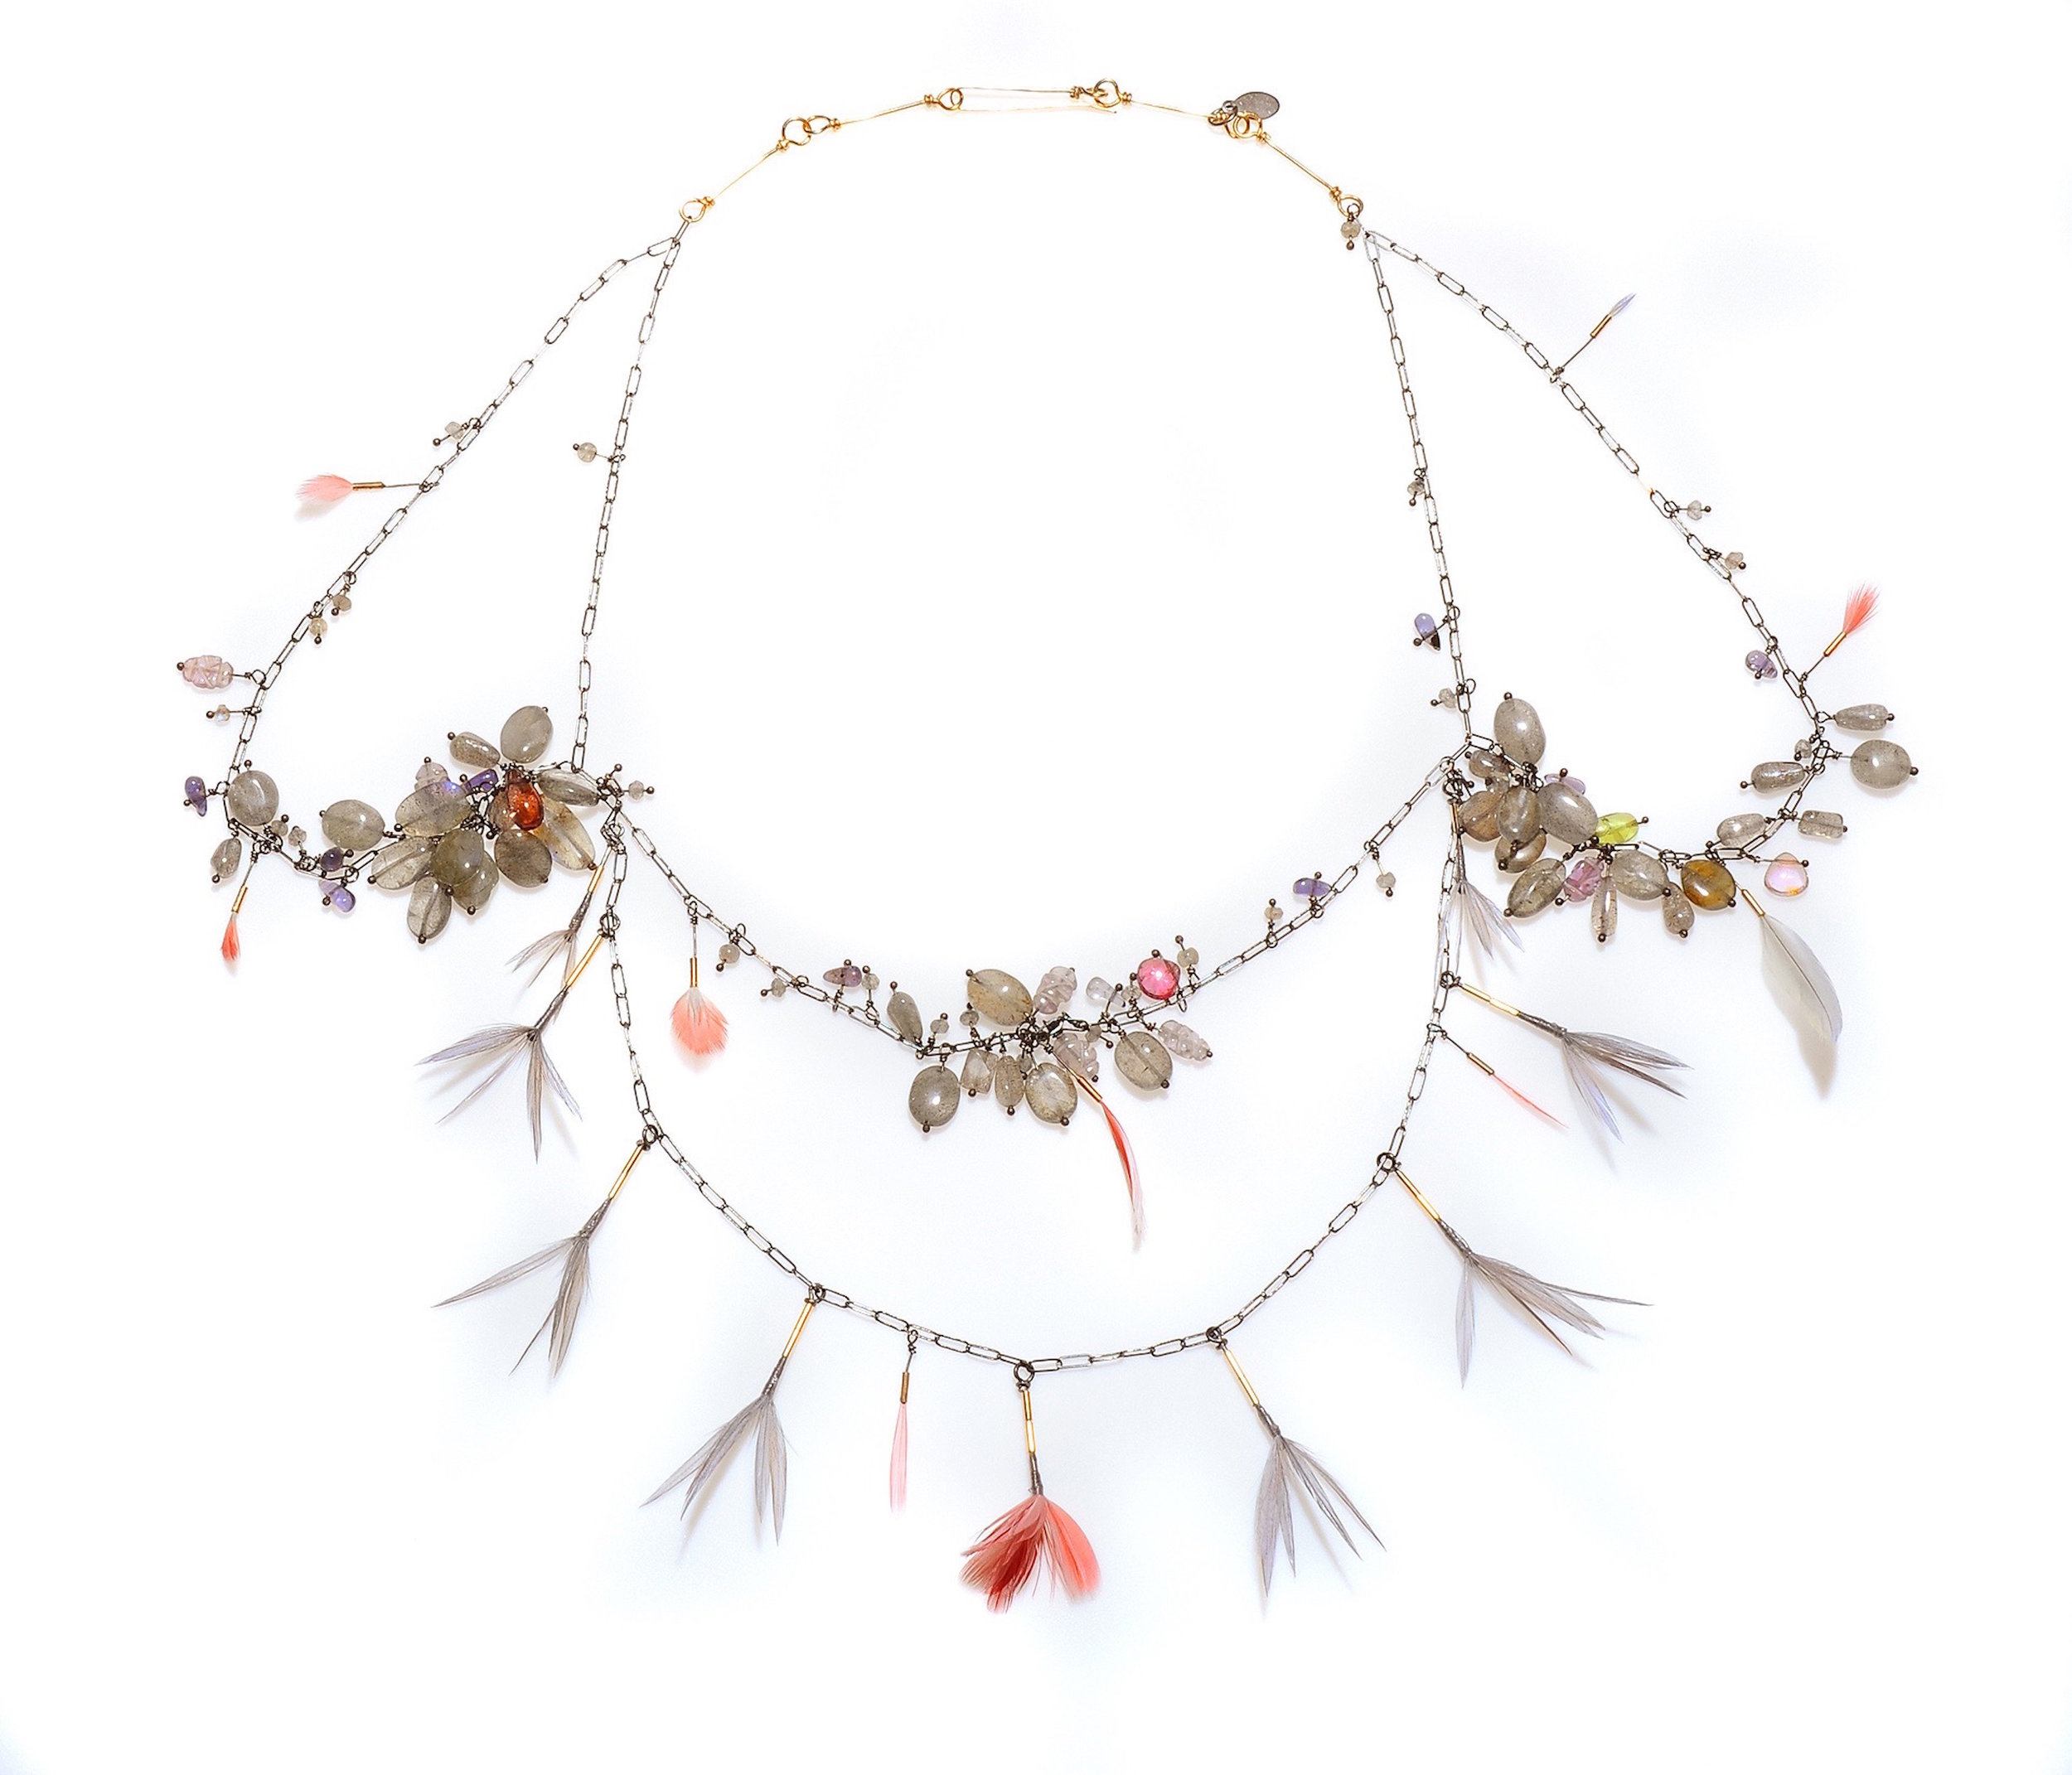 Gabrielle Gould,  Links of Troy Necklace